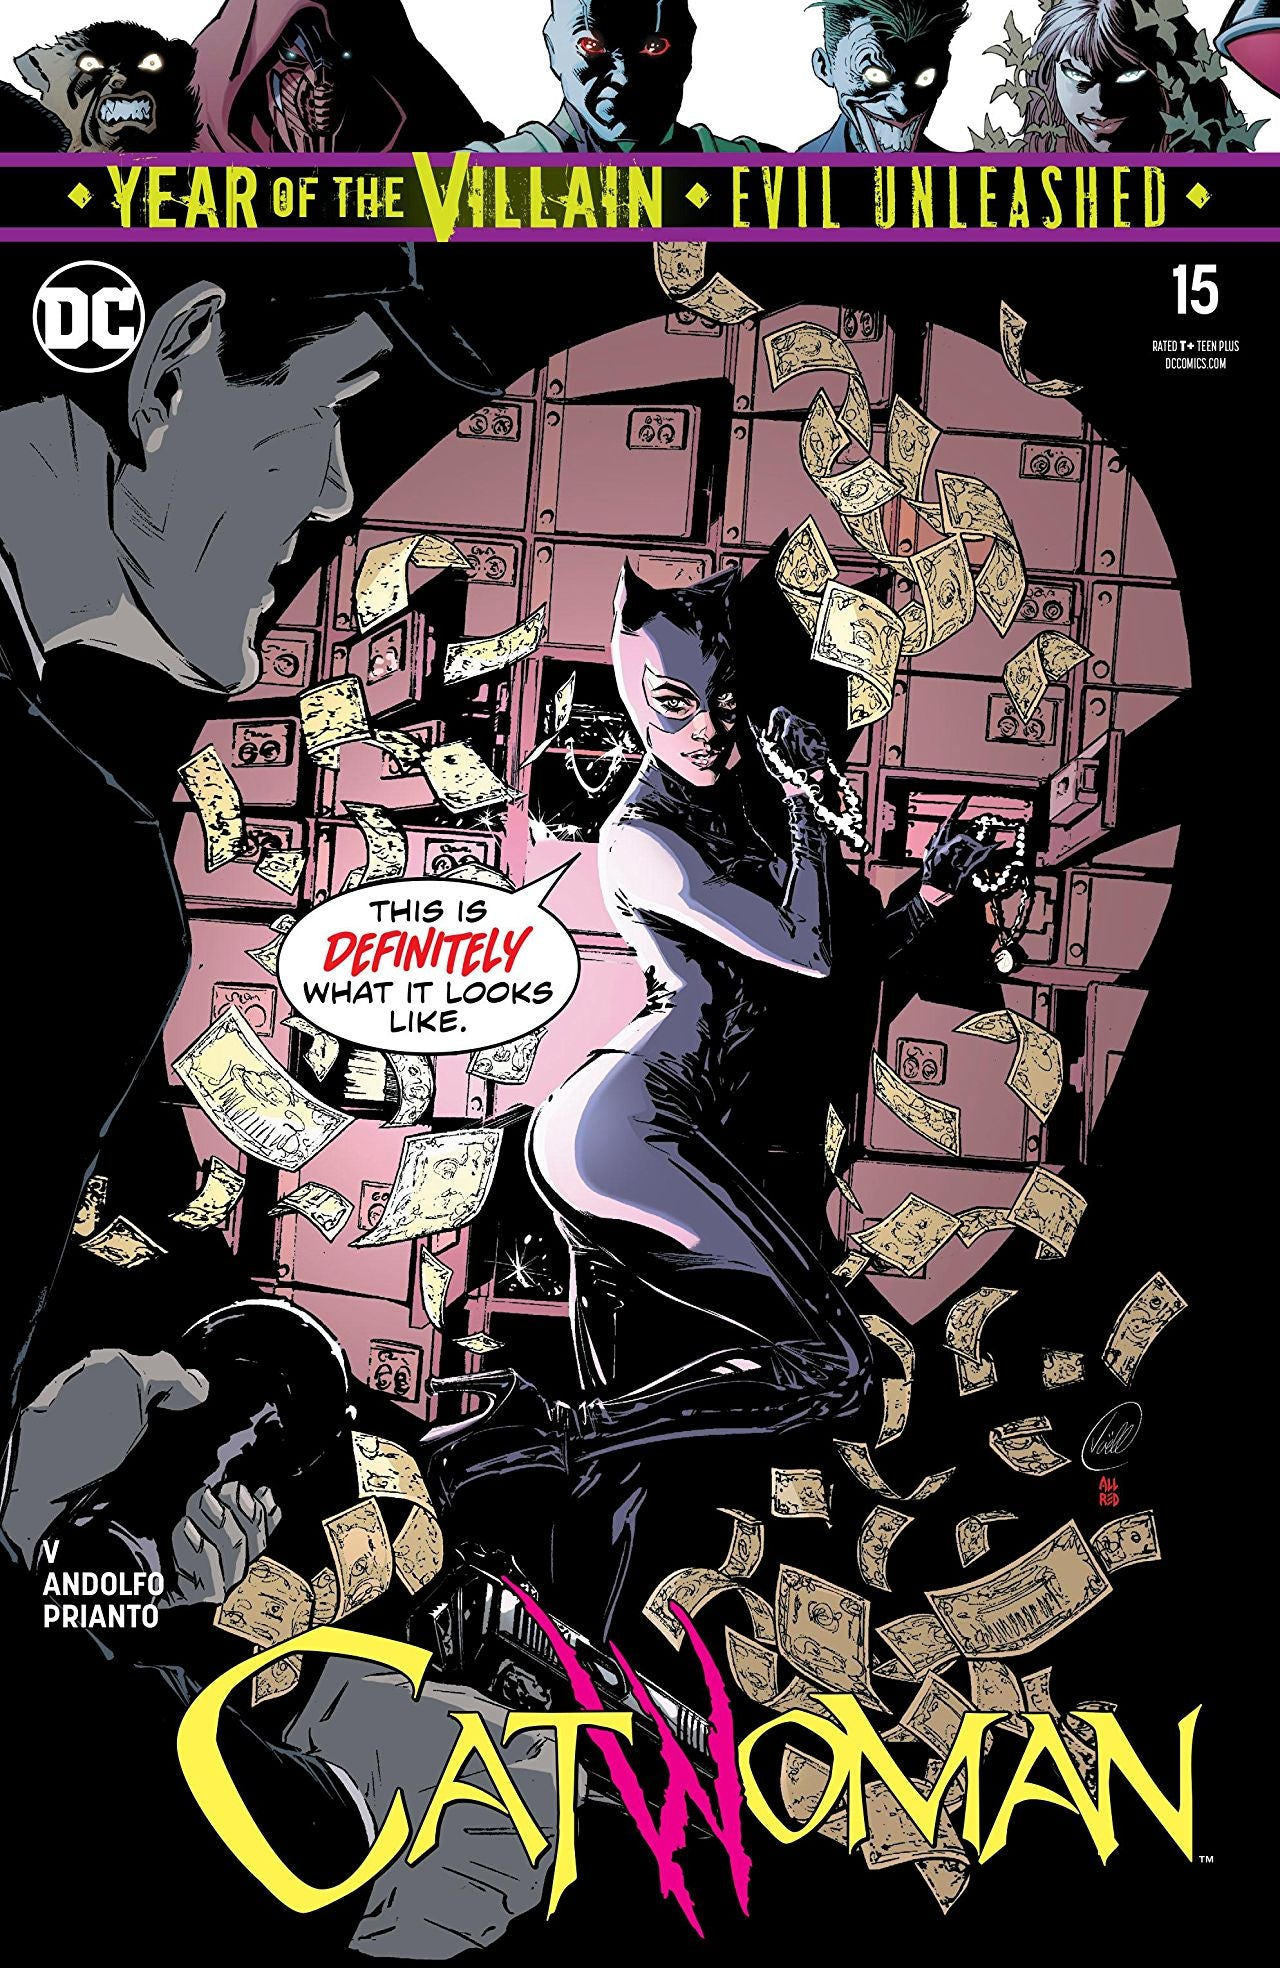 Catwoman (2018) #15